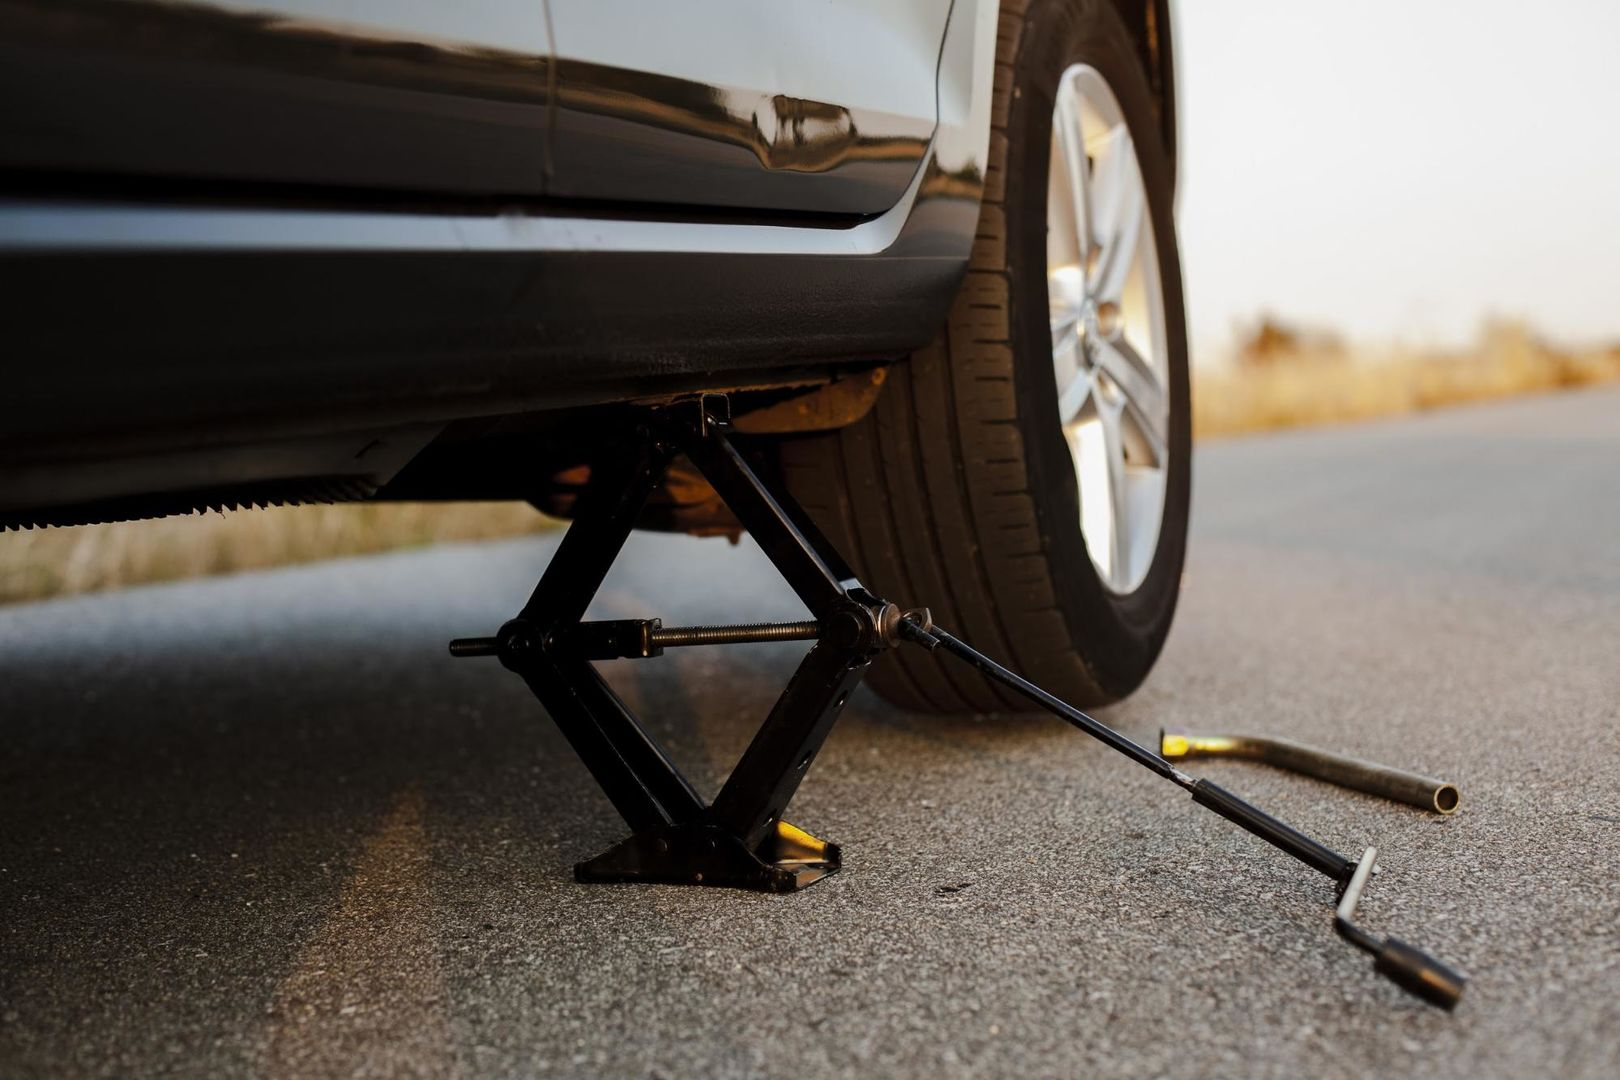 How to Change Your Car Tire All by Yourself? (DIY)